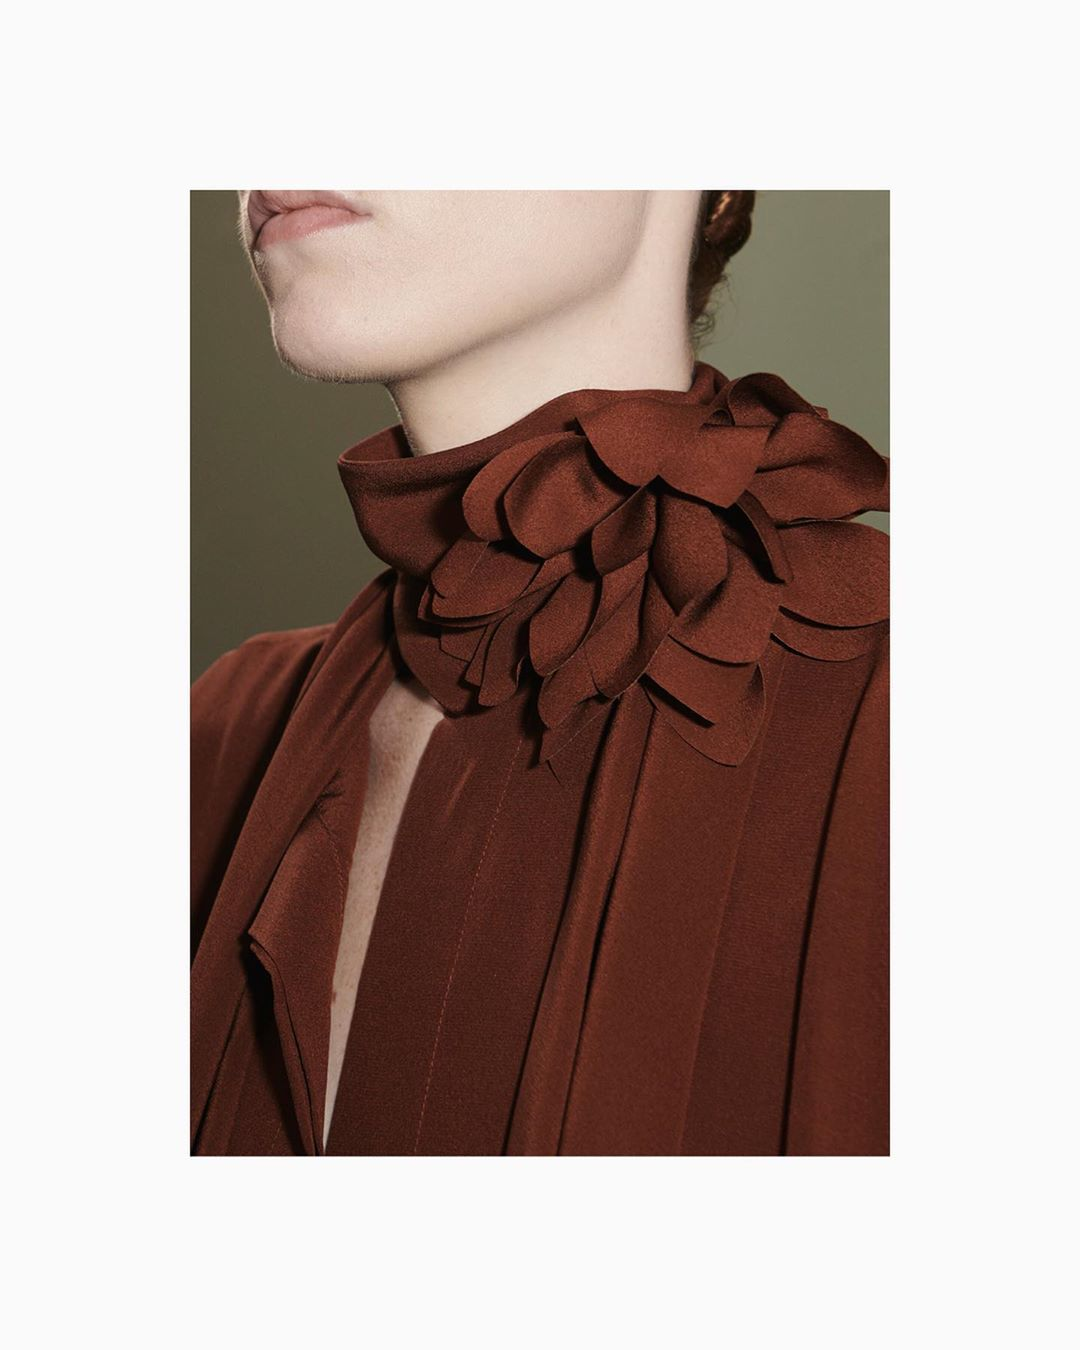 Victoria Beckham Instagram: Ruffles, silk flowers and unexpected pairings. Key codes from  x...